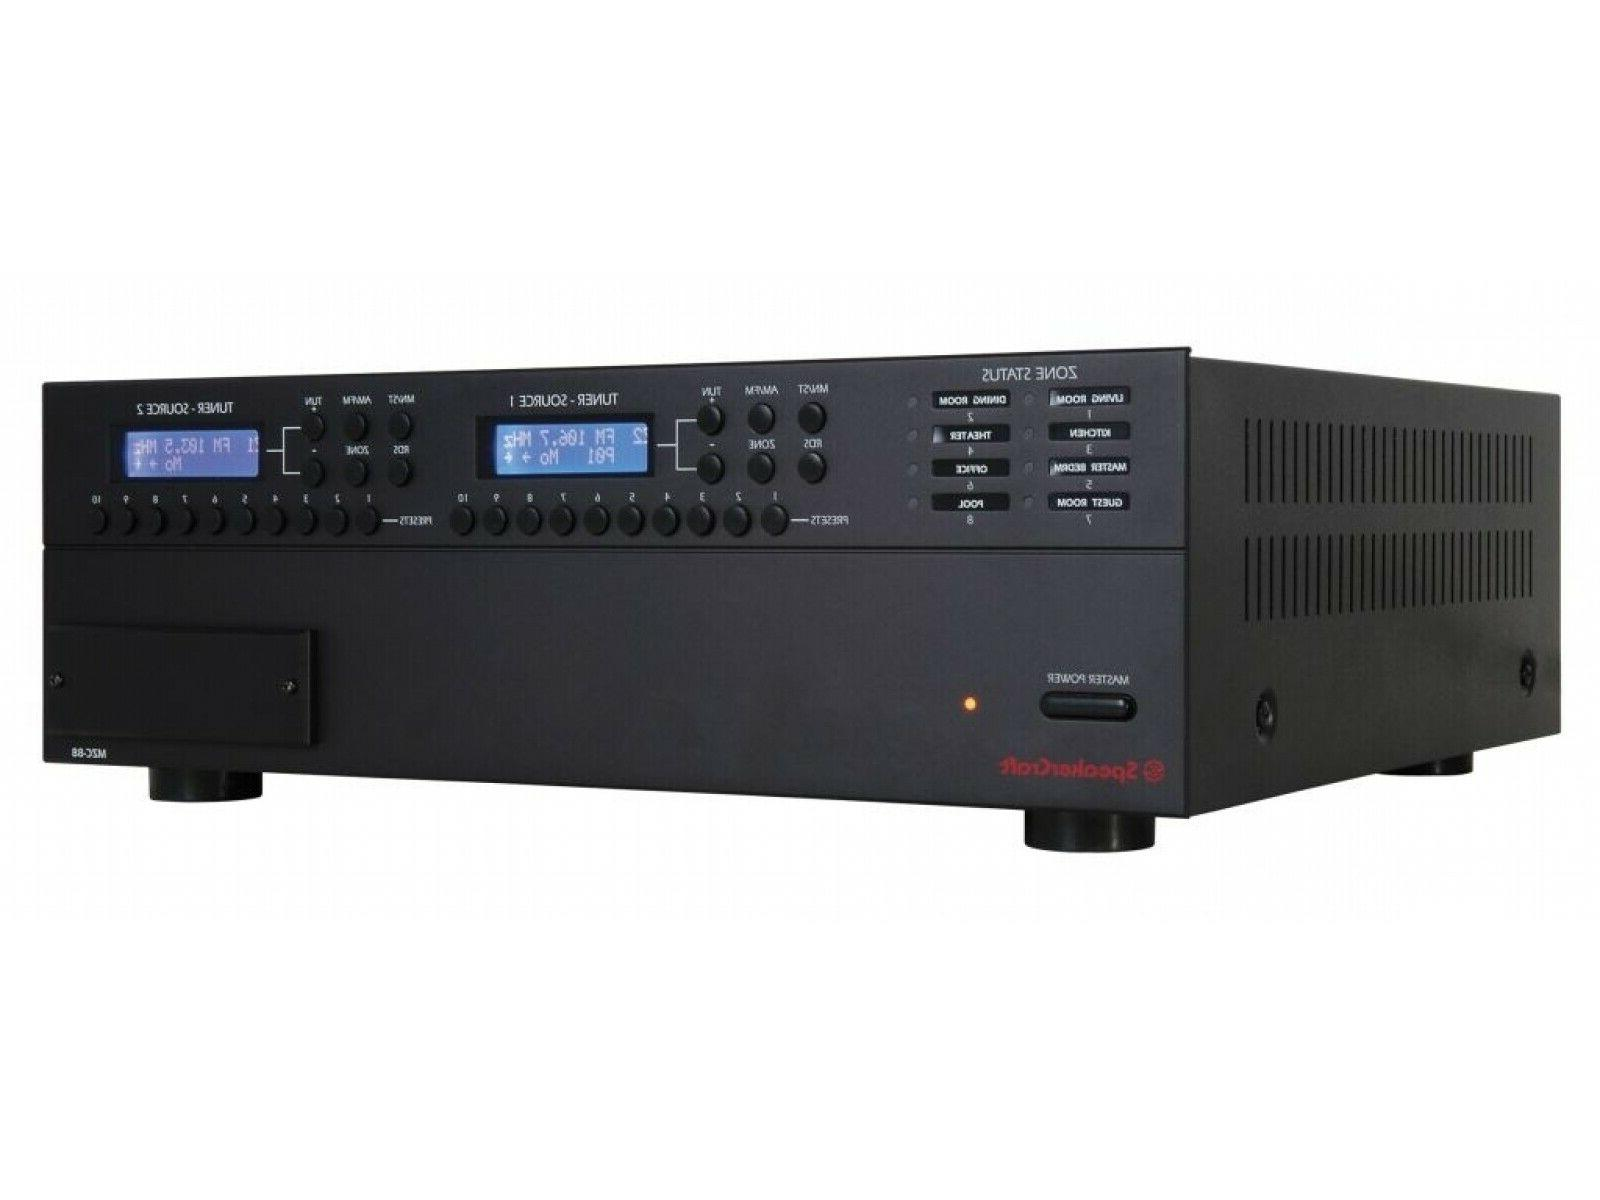 mzc 88 whole home amplifier amp 8